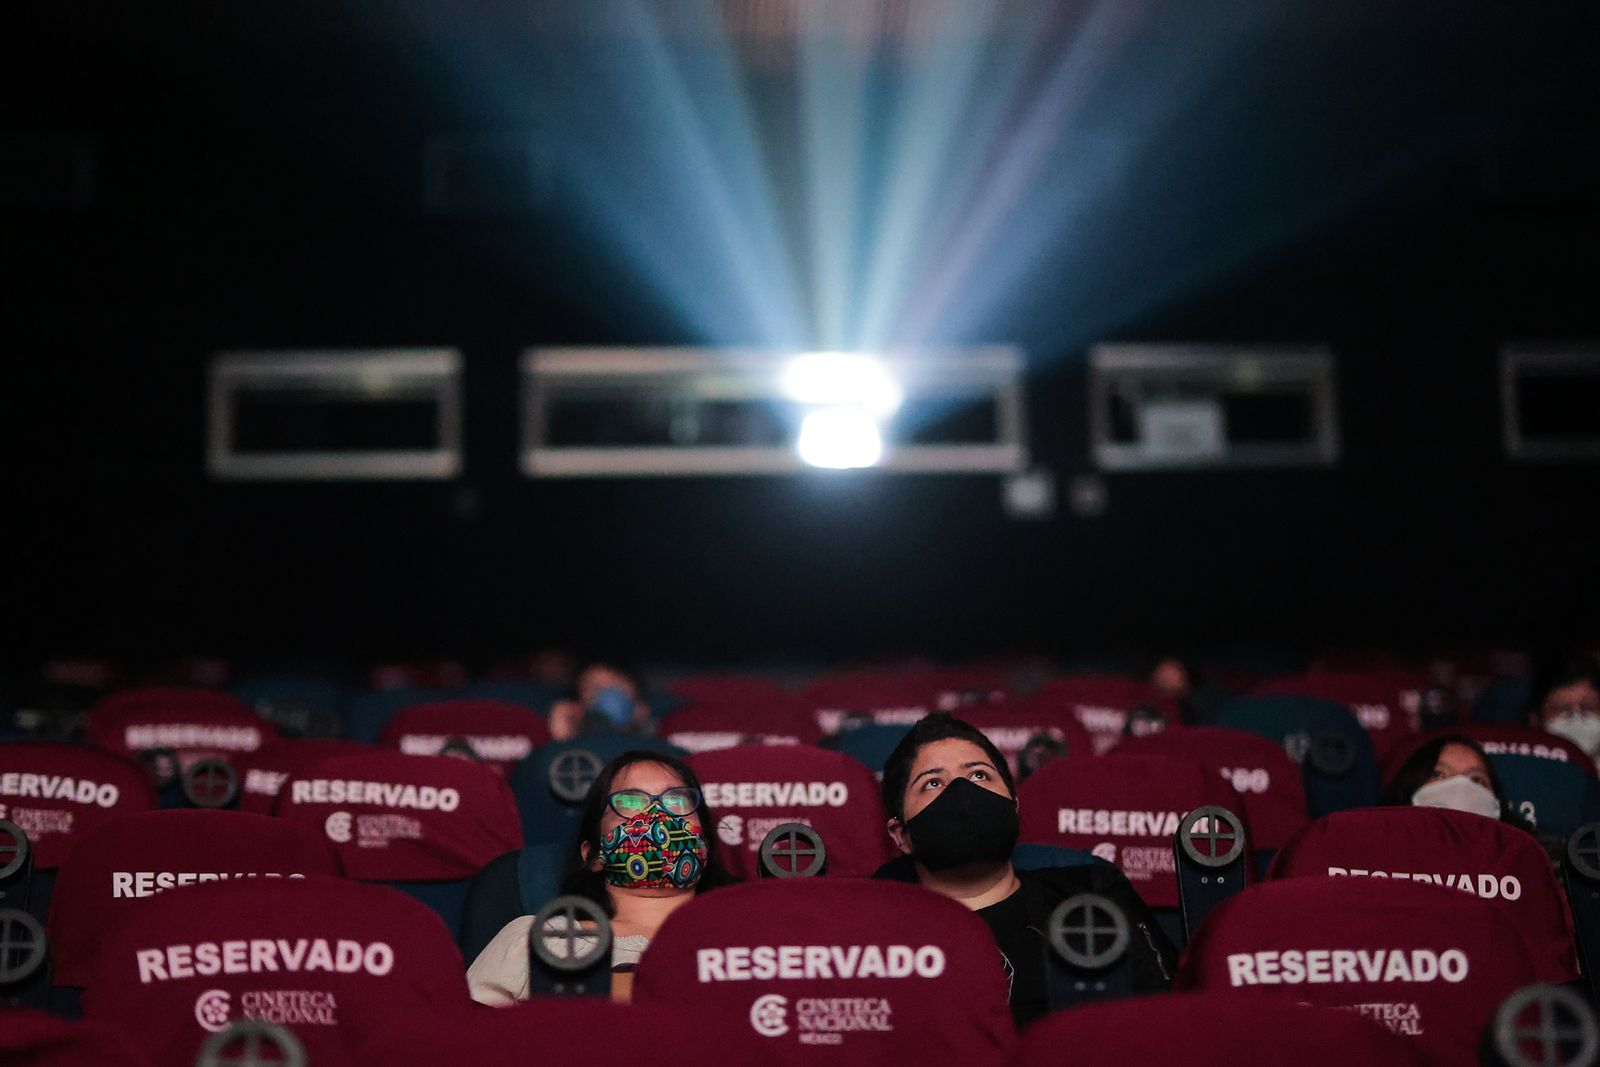 Cinemas Can Reopen in Mexico City After Four Months